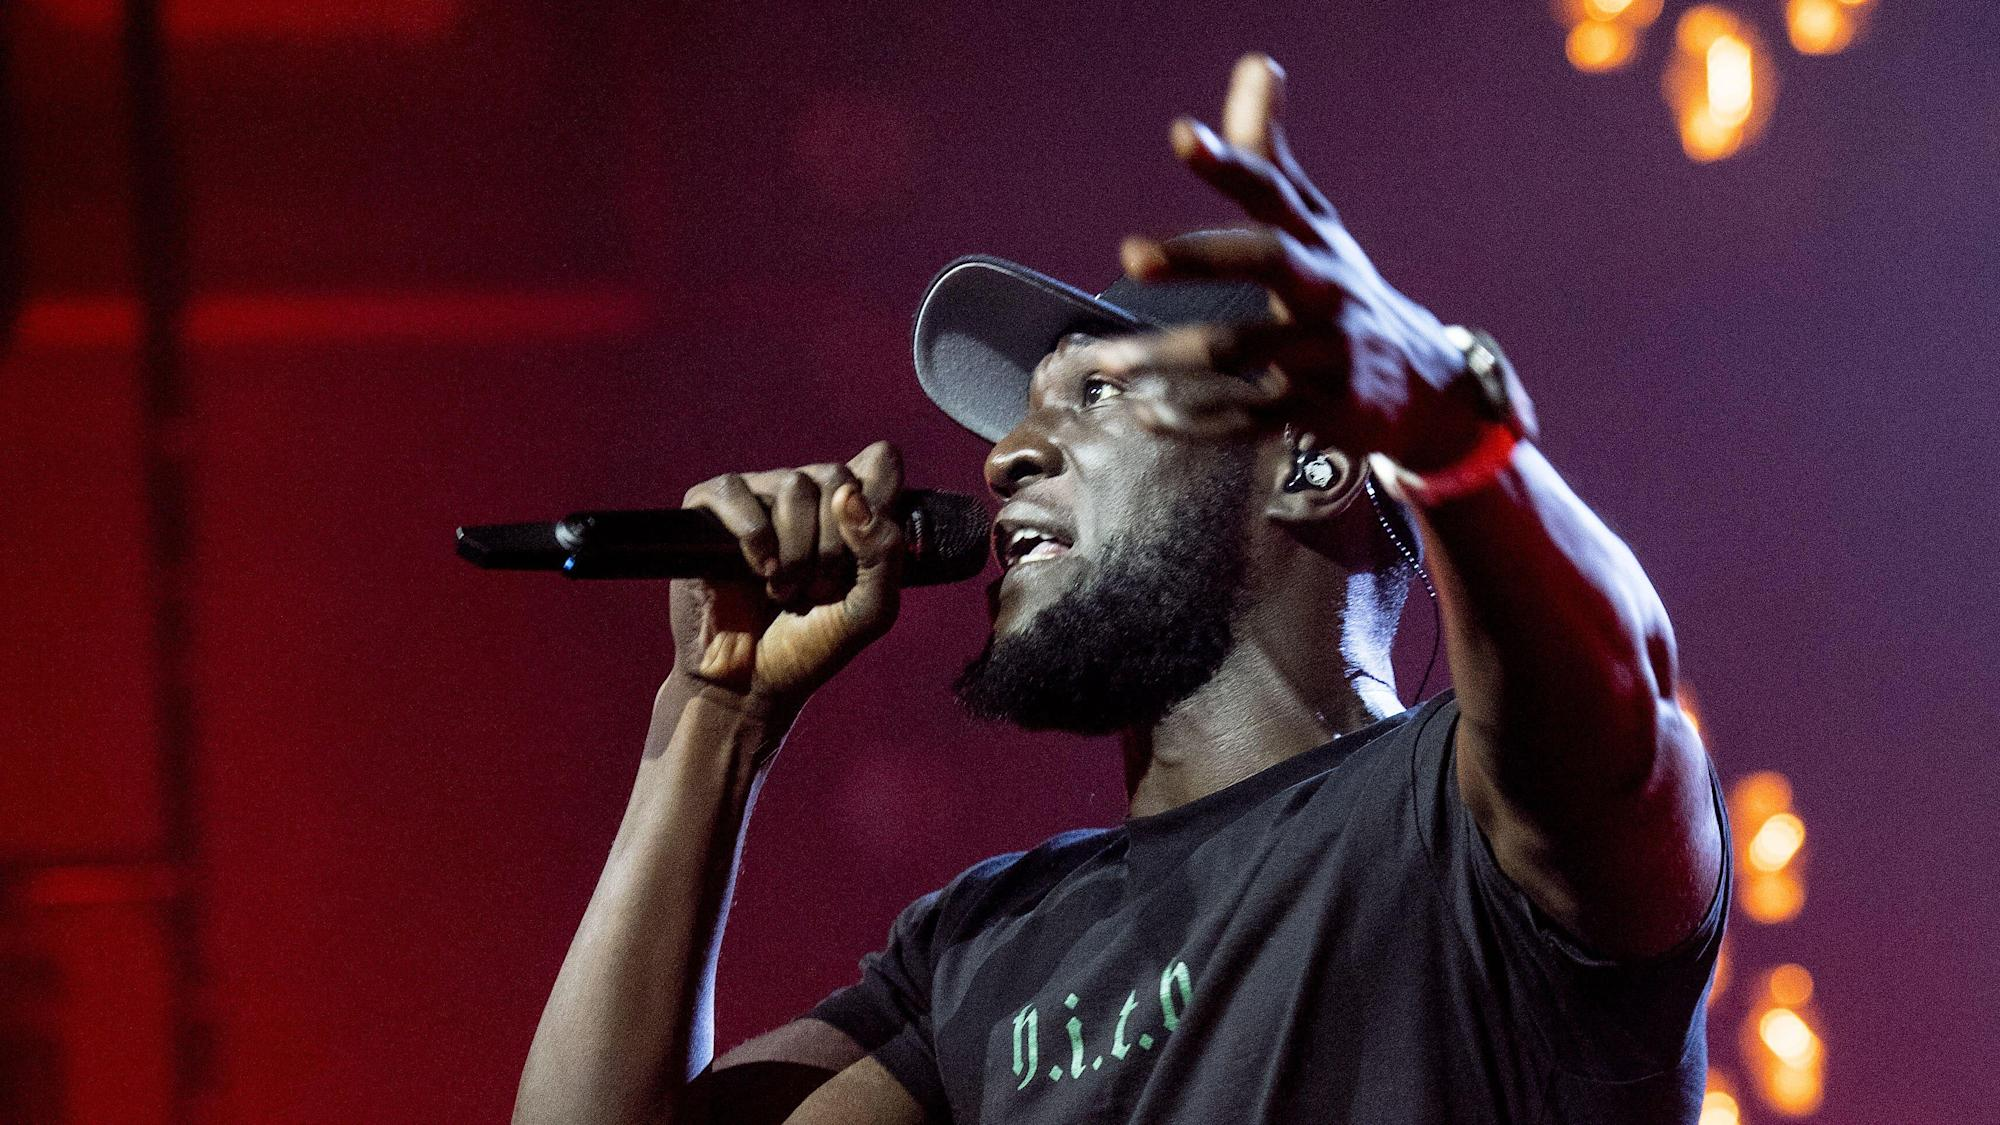 Stormzy teams up with Ghetts for first music of 2021